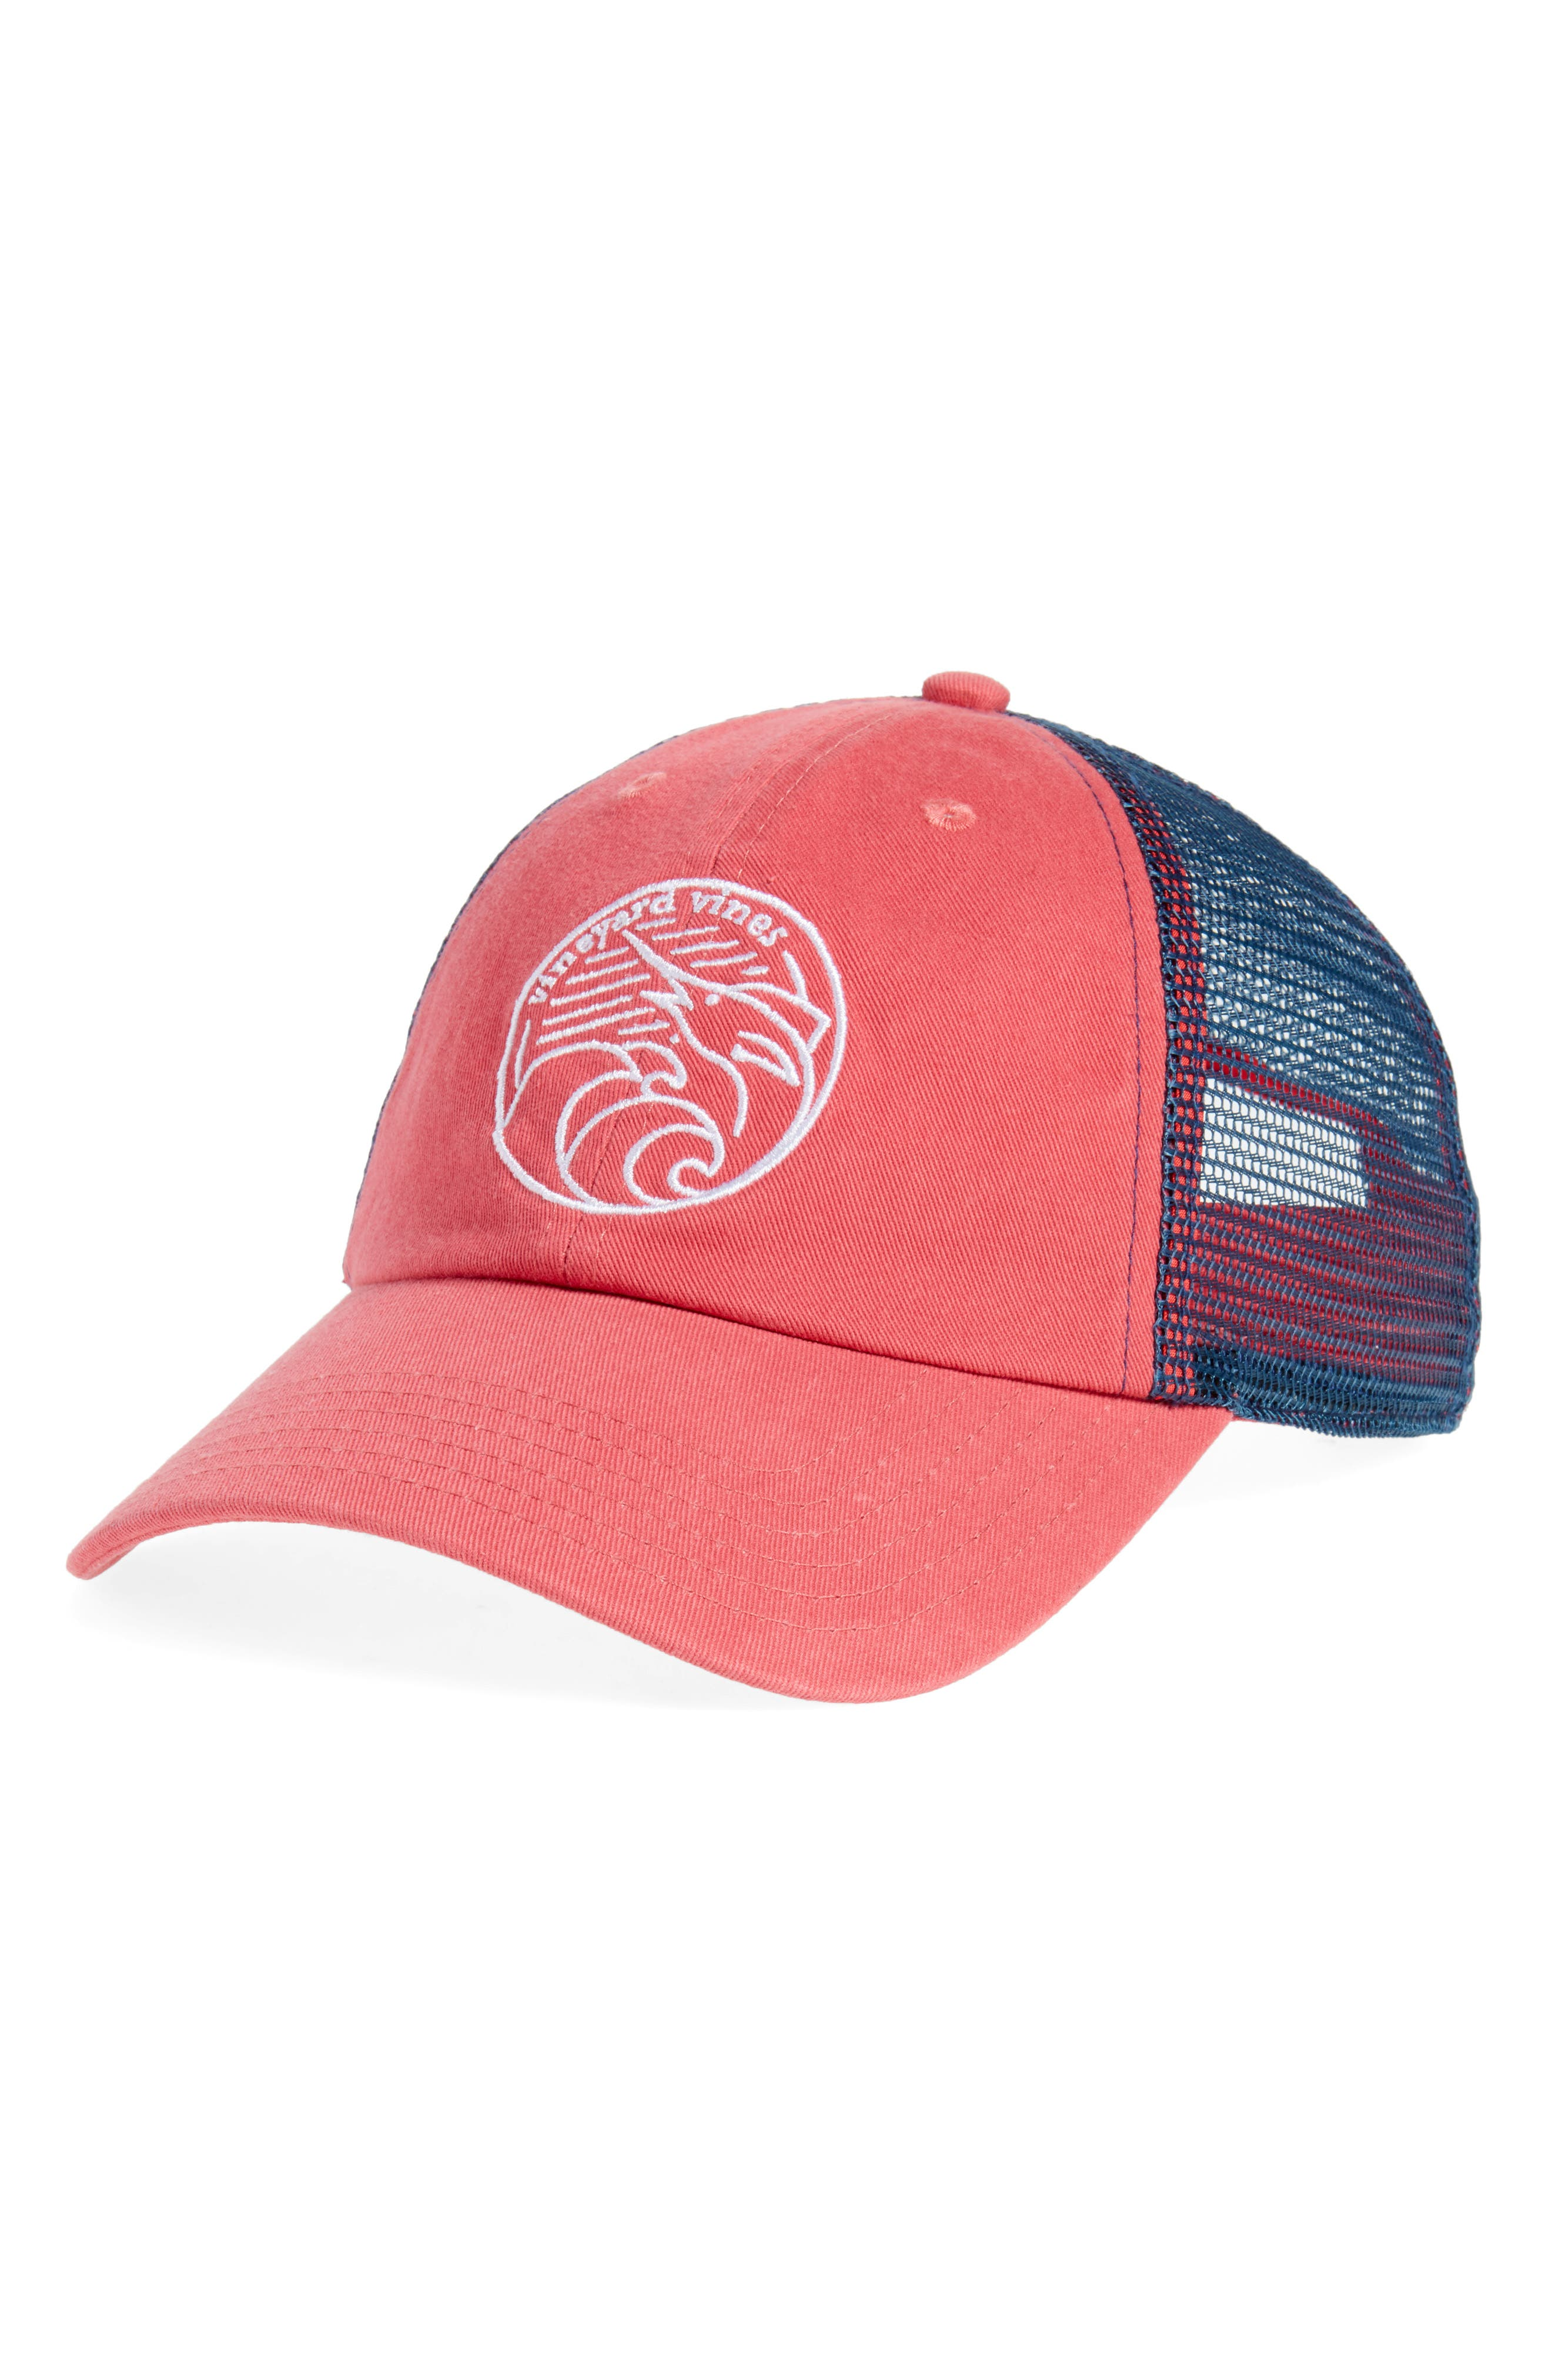 Low Pro Marlin Trucker Cap,                         Main,                         color, Jetty Red